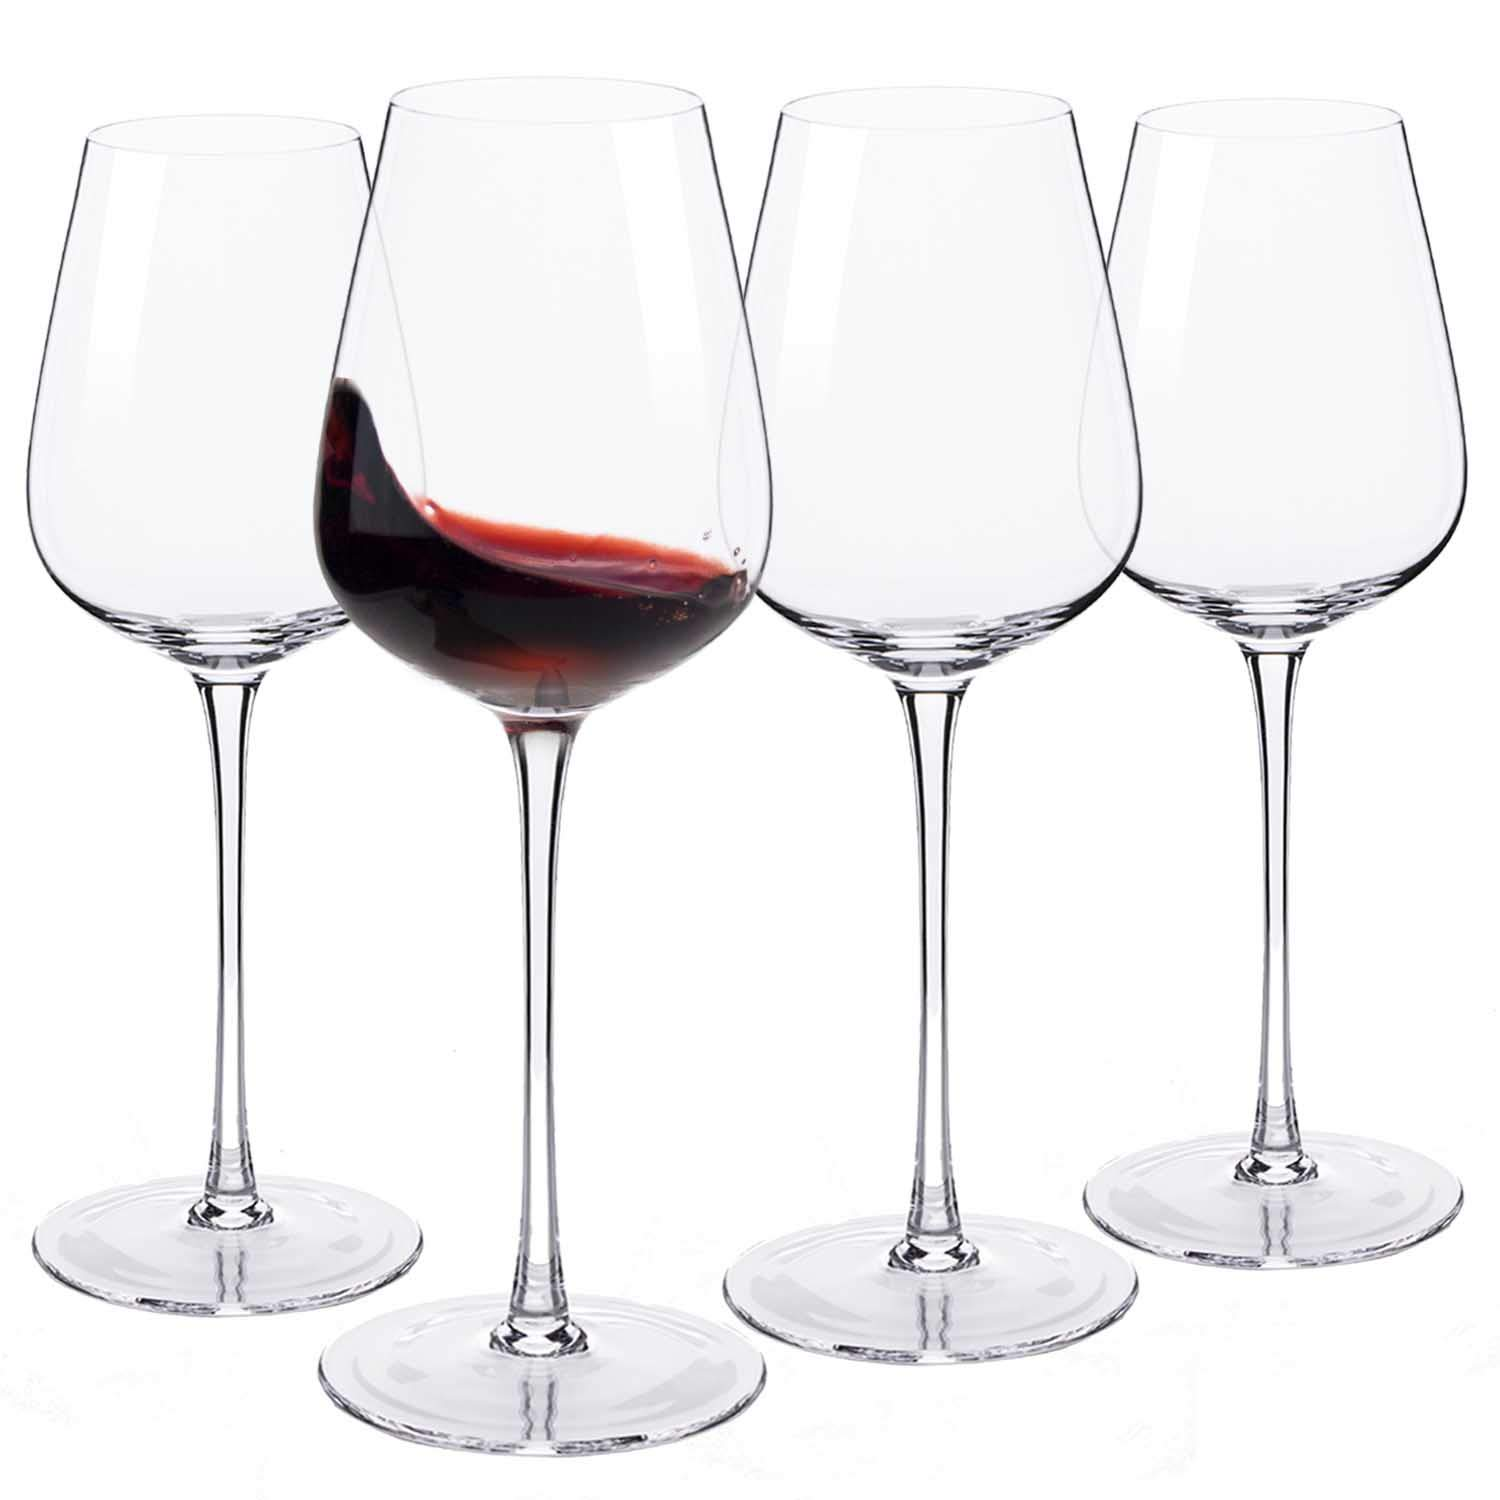 Hand Blown Italian Style Crystal Bordeaux Wine Glasses - Red Wine Glasses Lead Free Premium Crystal Clear Glass - Set of 4-18 Ounce - Safer Packaging for Any Occasion by JBHome